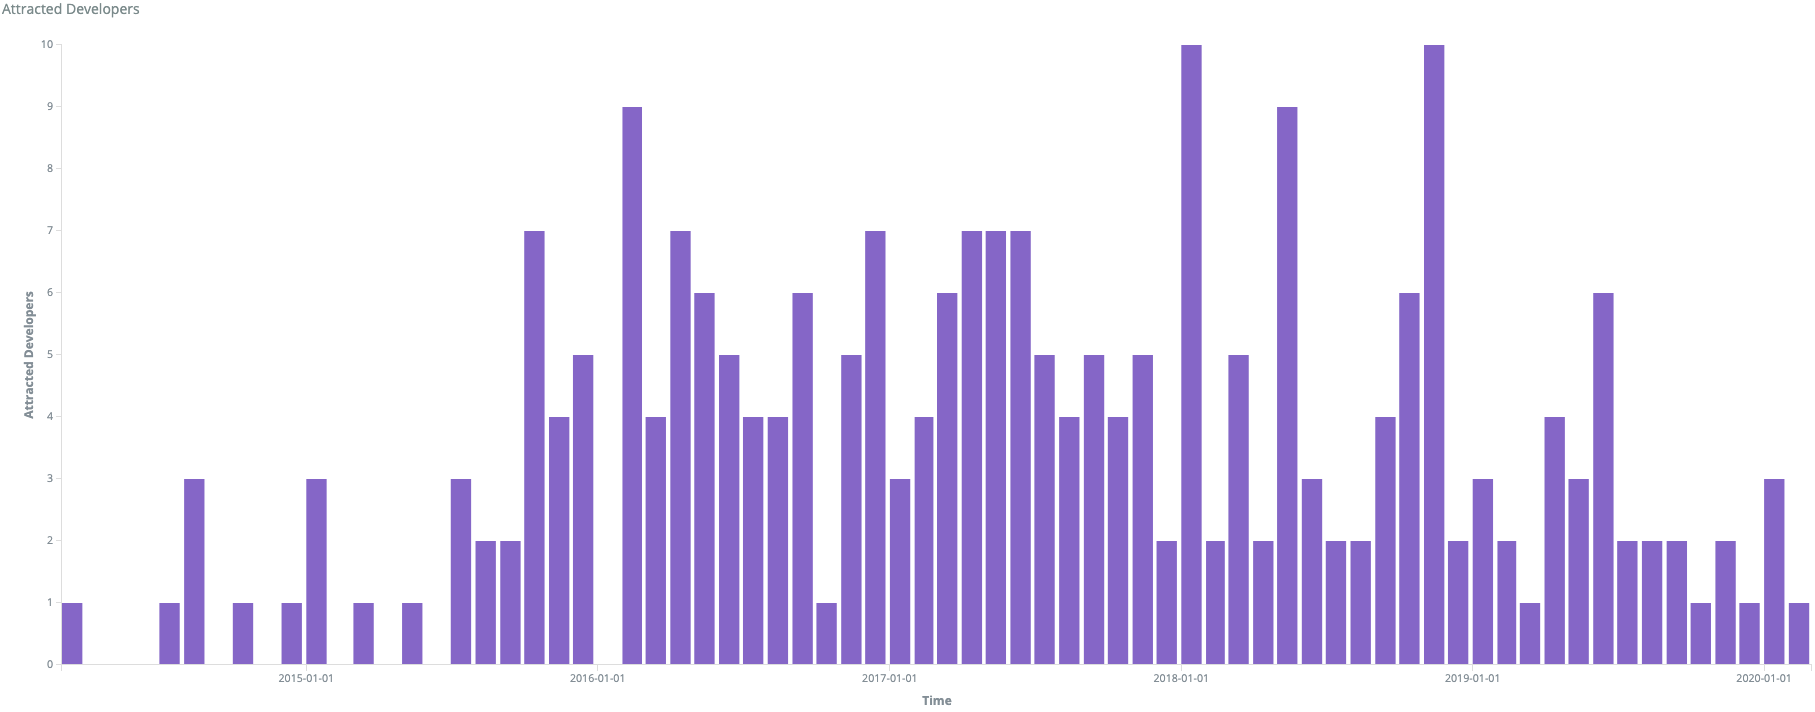 Growth in contributors to Mautic in Q1 2020